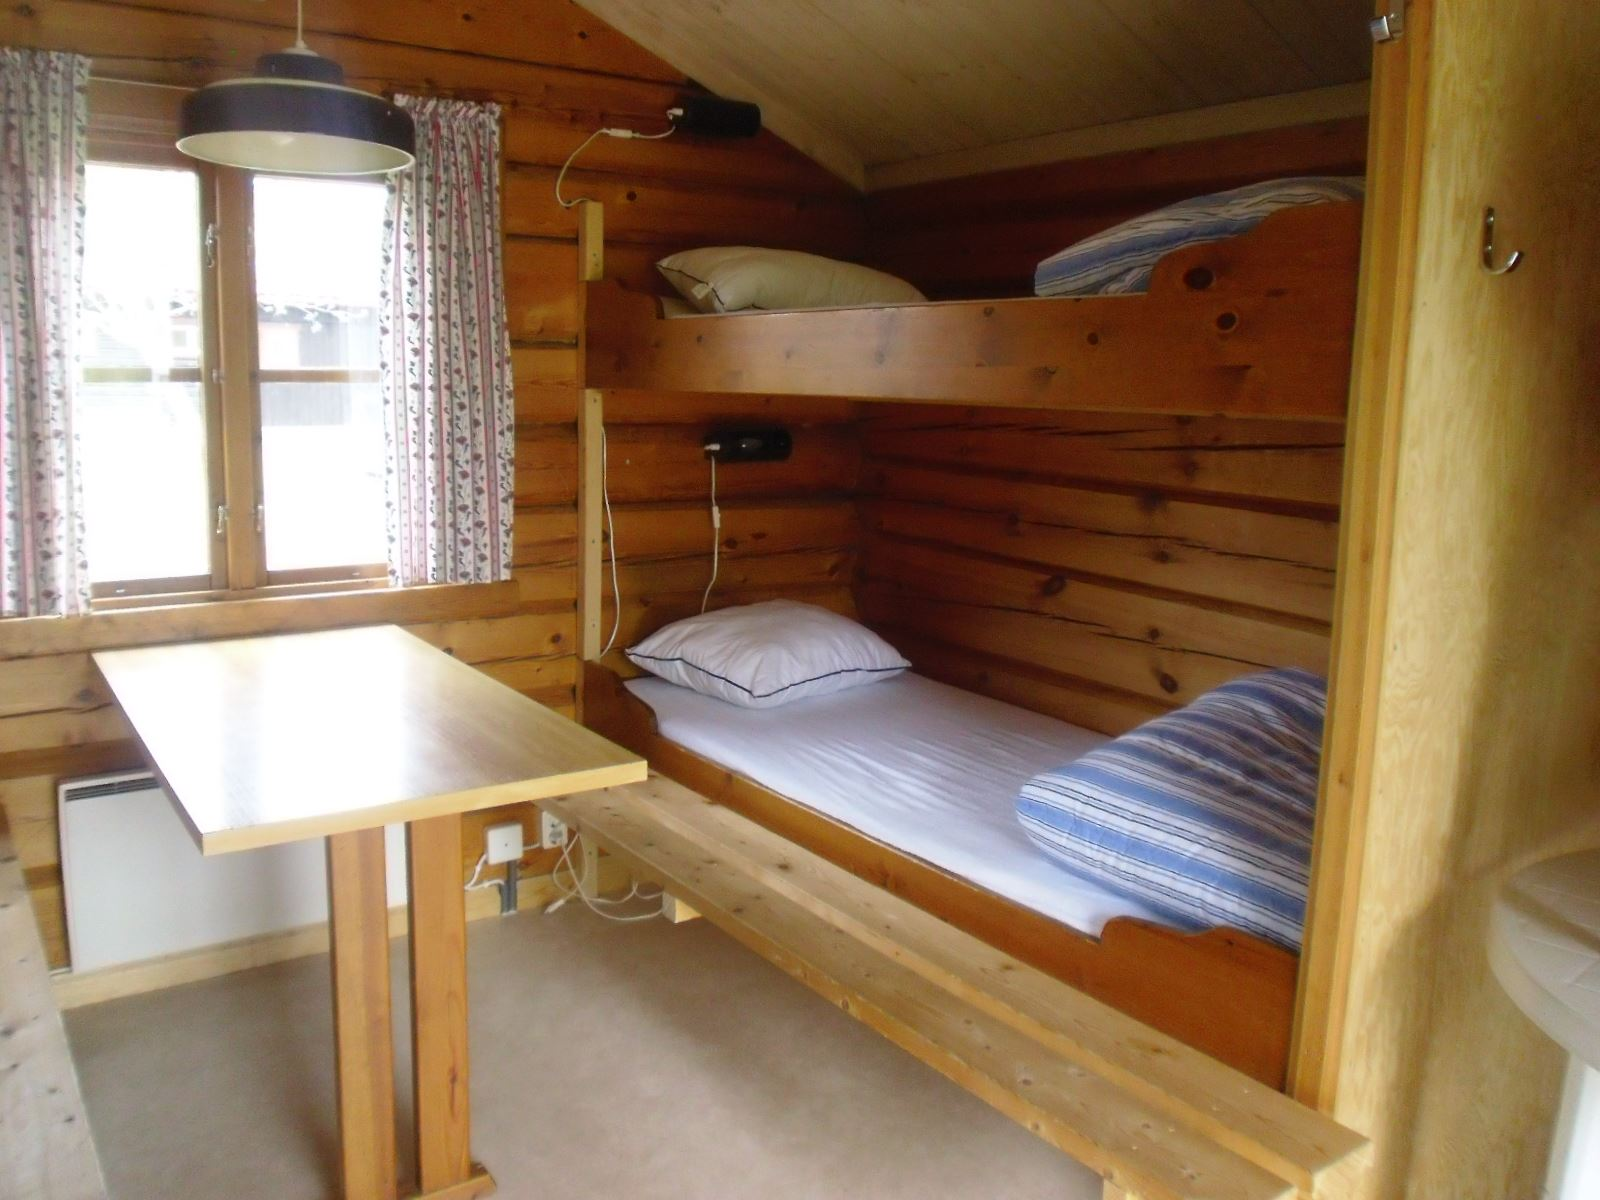 Cabin (4 beds)